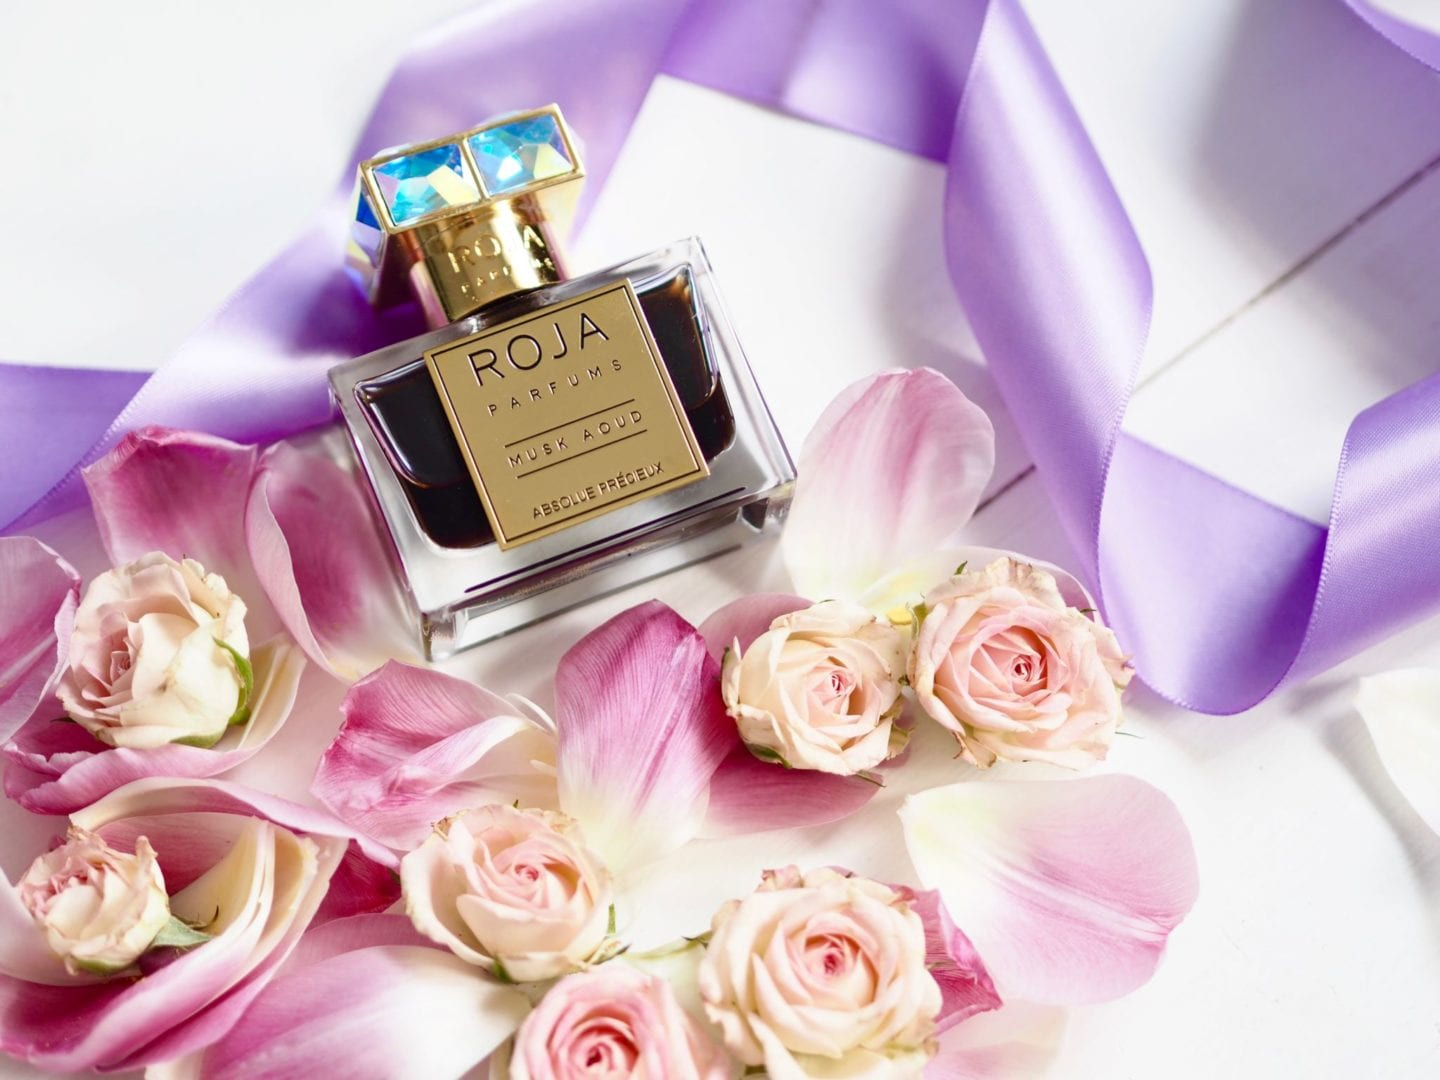 Fragrance Roja Musk Aoud perfume review